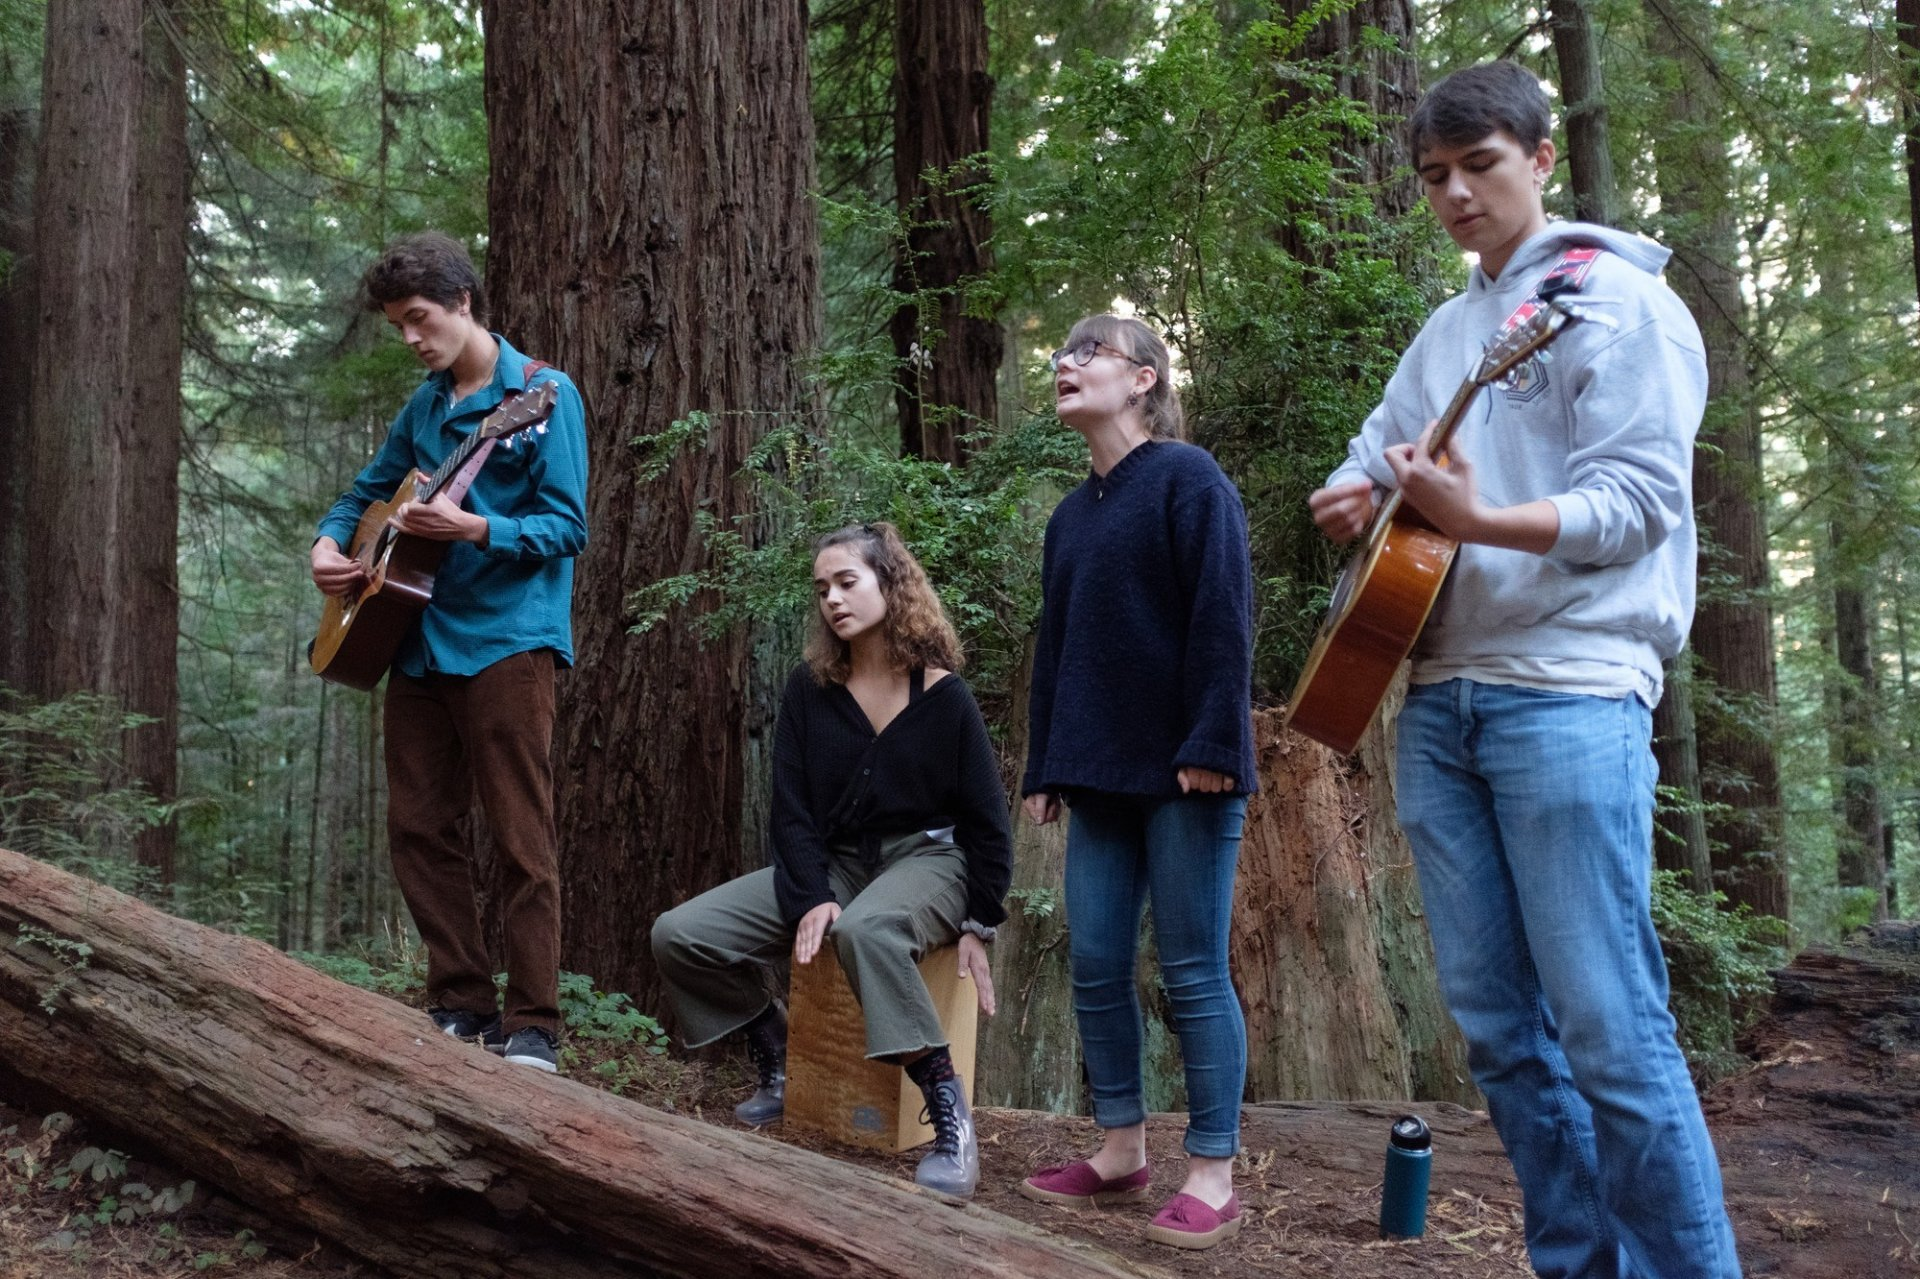 From left to right: Lucas Homan, Zelda Geren, Nigella Baur and Fenix Banaskiewicz of Petty Education are performing in the Arcata community forest show on Sept. 23 in Arcata, CA. The band is one of four who played at the show. | Photo by Michael Weber